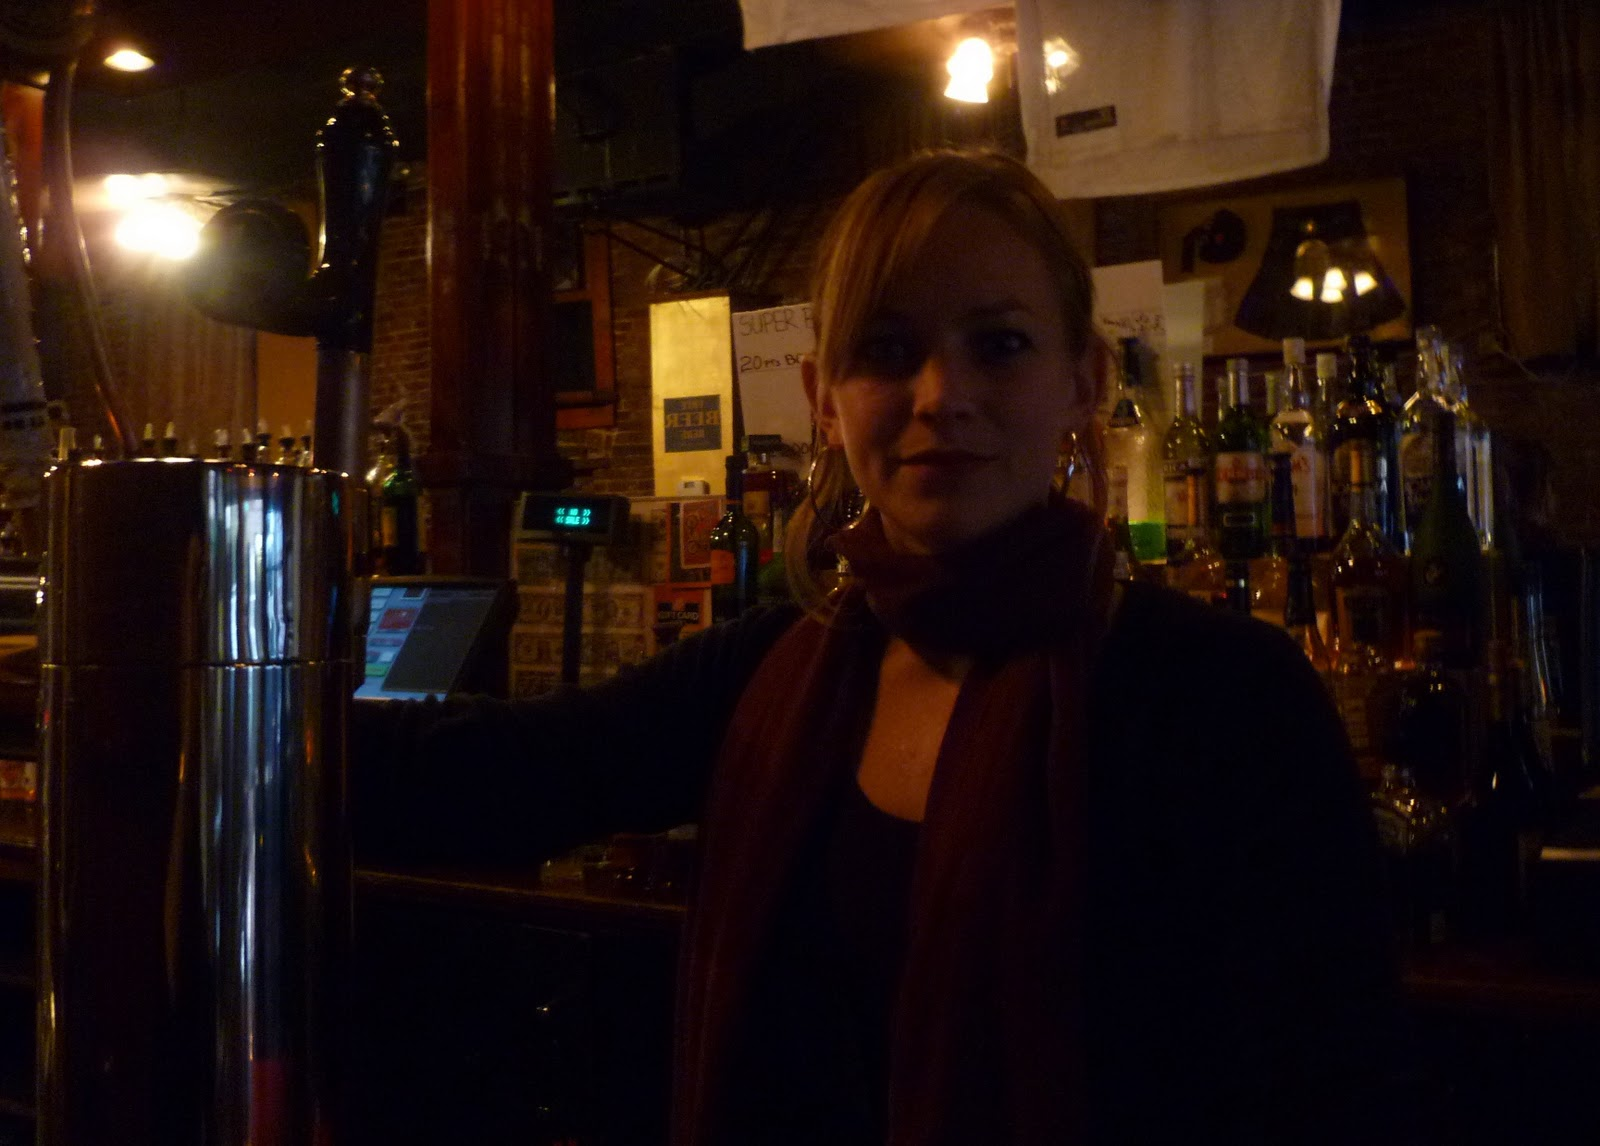 Know your bartender kristin lees loki lounge home heres loki lounge on fifth avenue and second street has two identities during the week its known for its long bar 12 rotating taps good happy hour sciox Choice Image